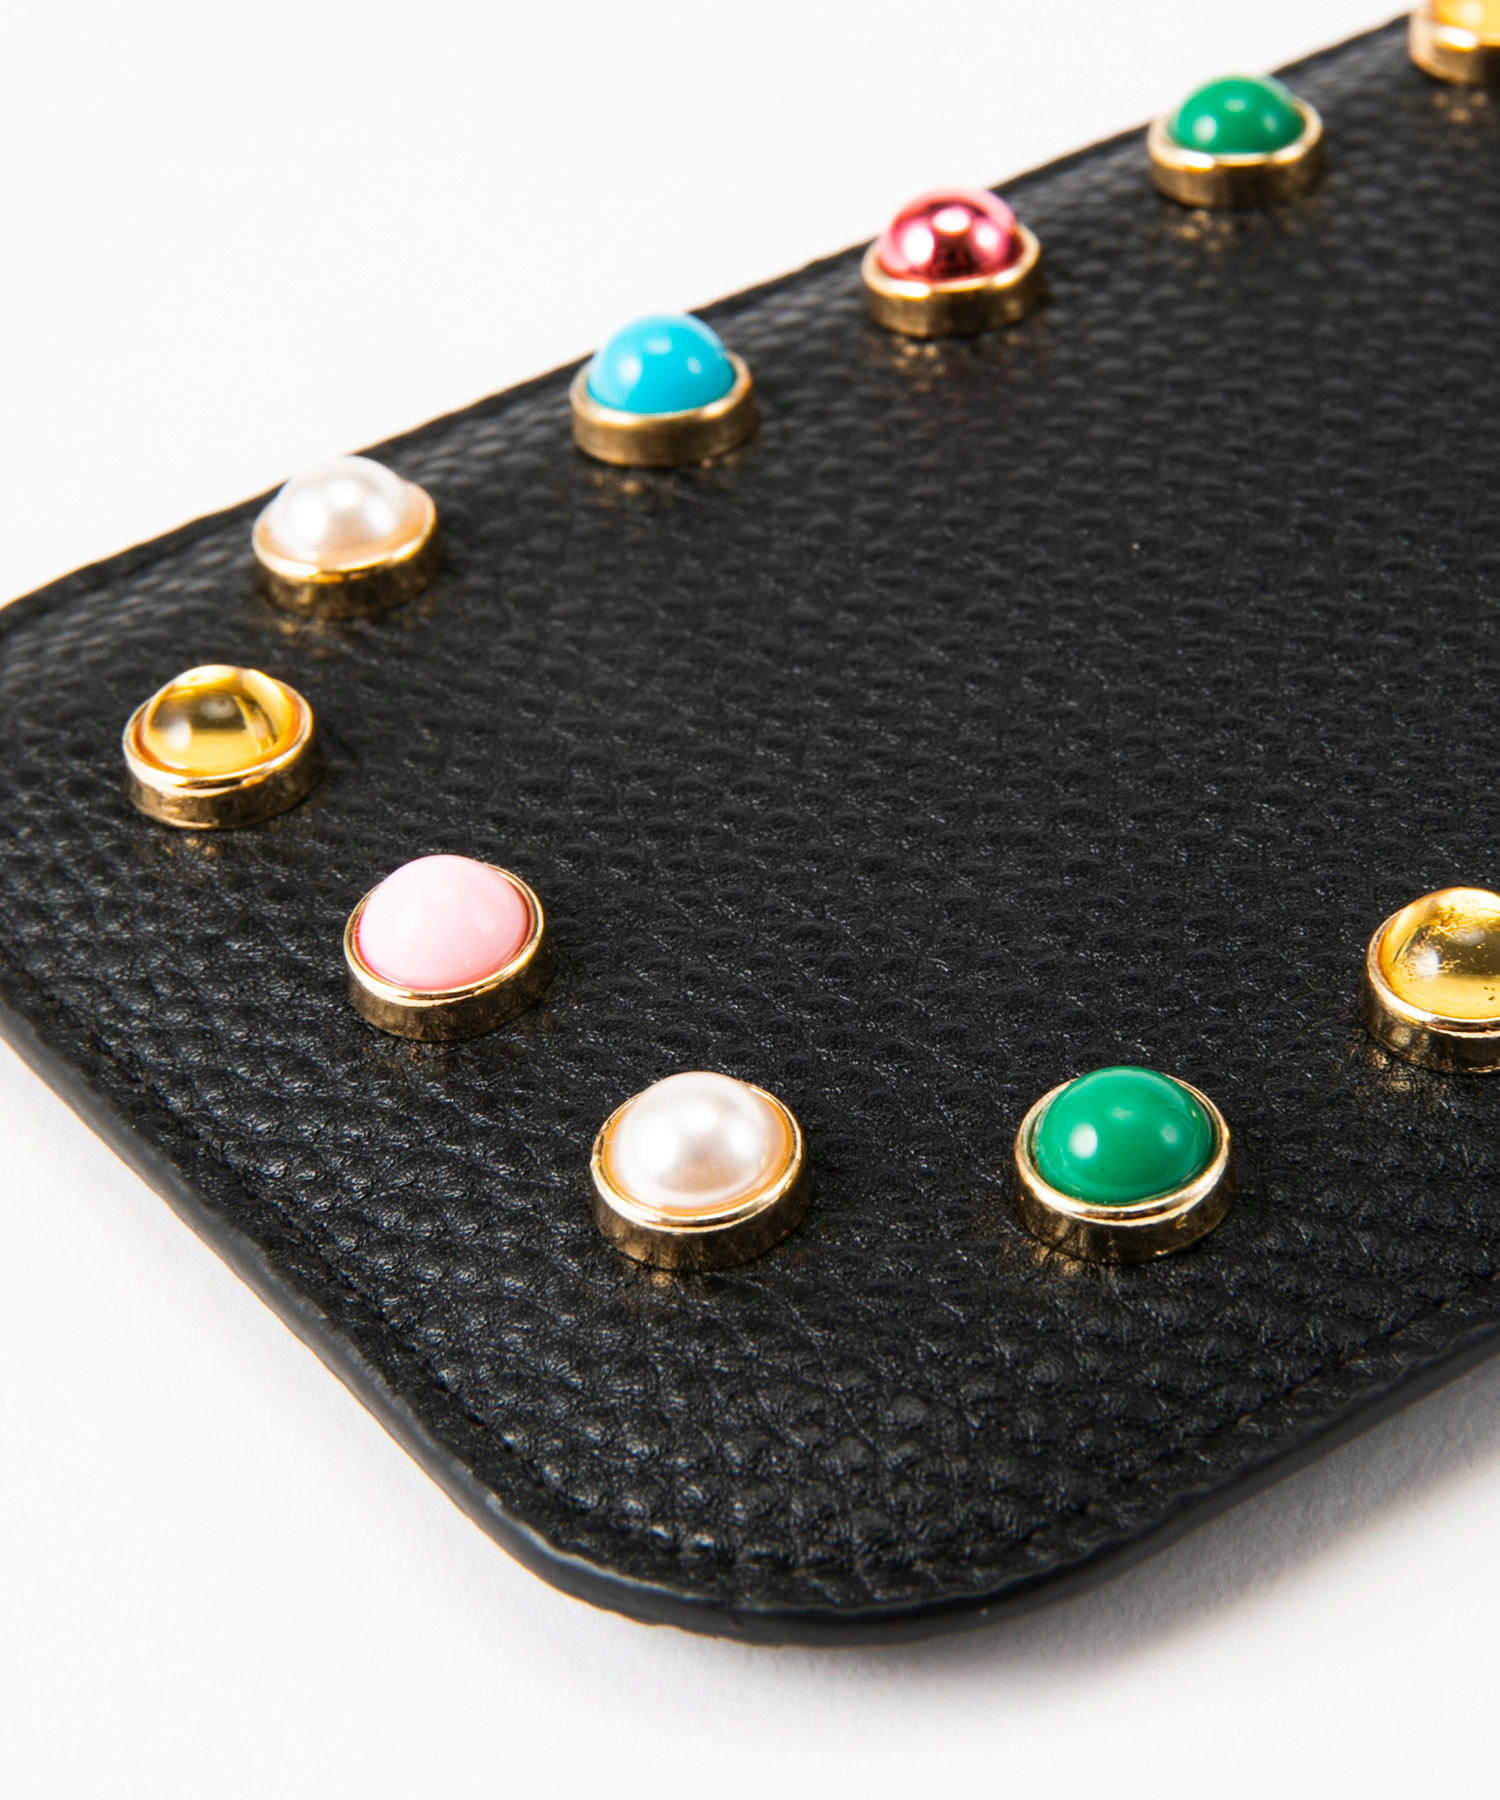 Necklace Sleeve Case for Apple iPhone 7+/8+/XR/XS Max/11/11 Pro Max - Black & Colorful Pearls